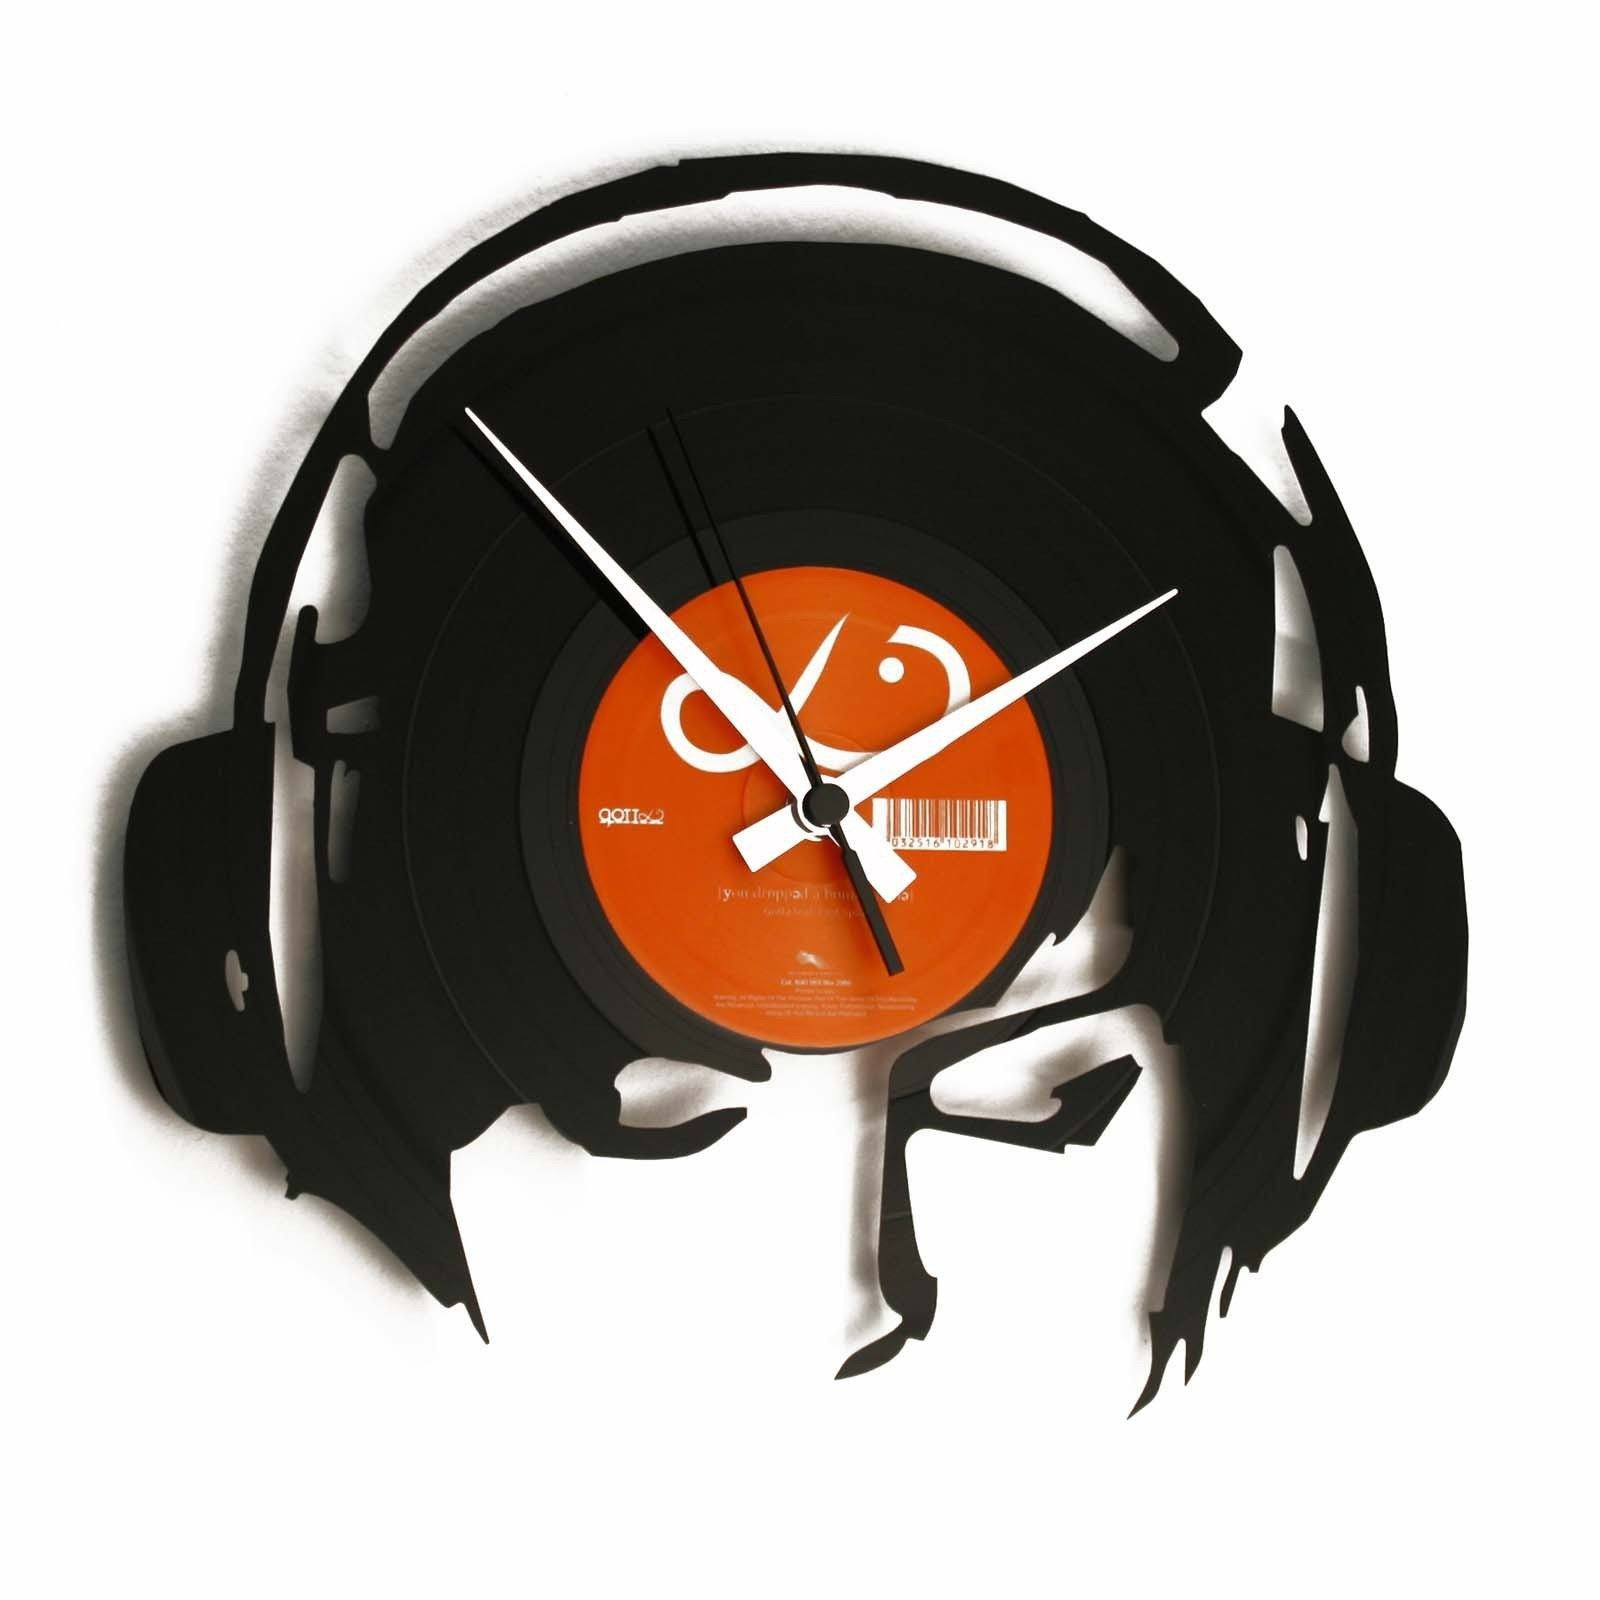 DISC'O'CLOCK Vinyl Record DJ At Work Wall Clock 30cm DOC030